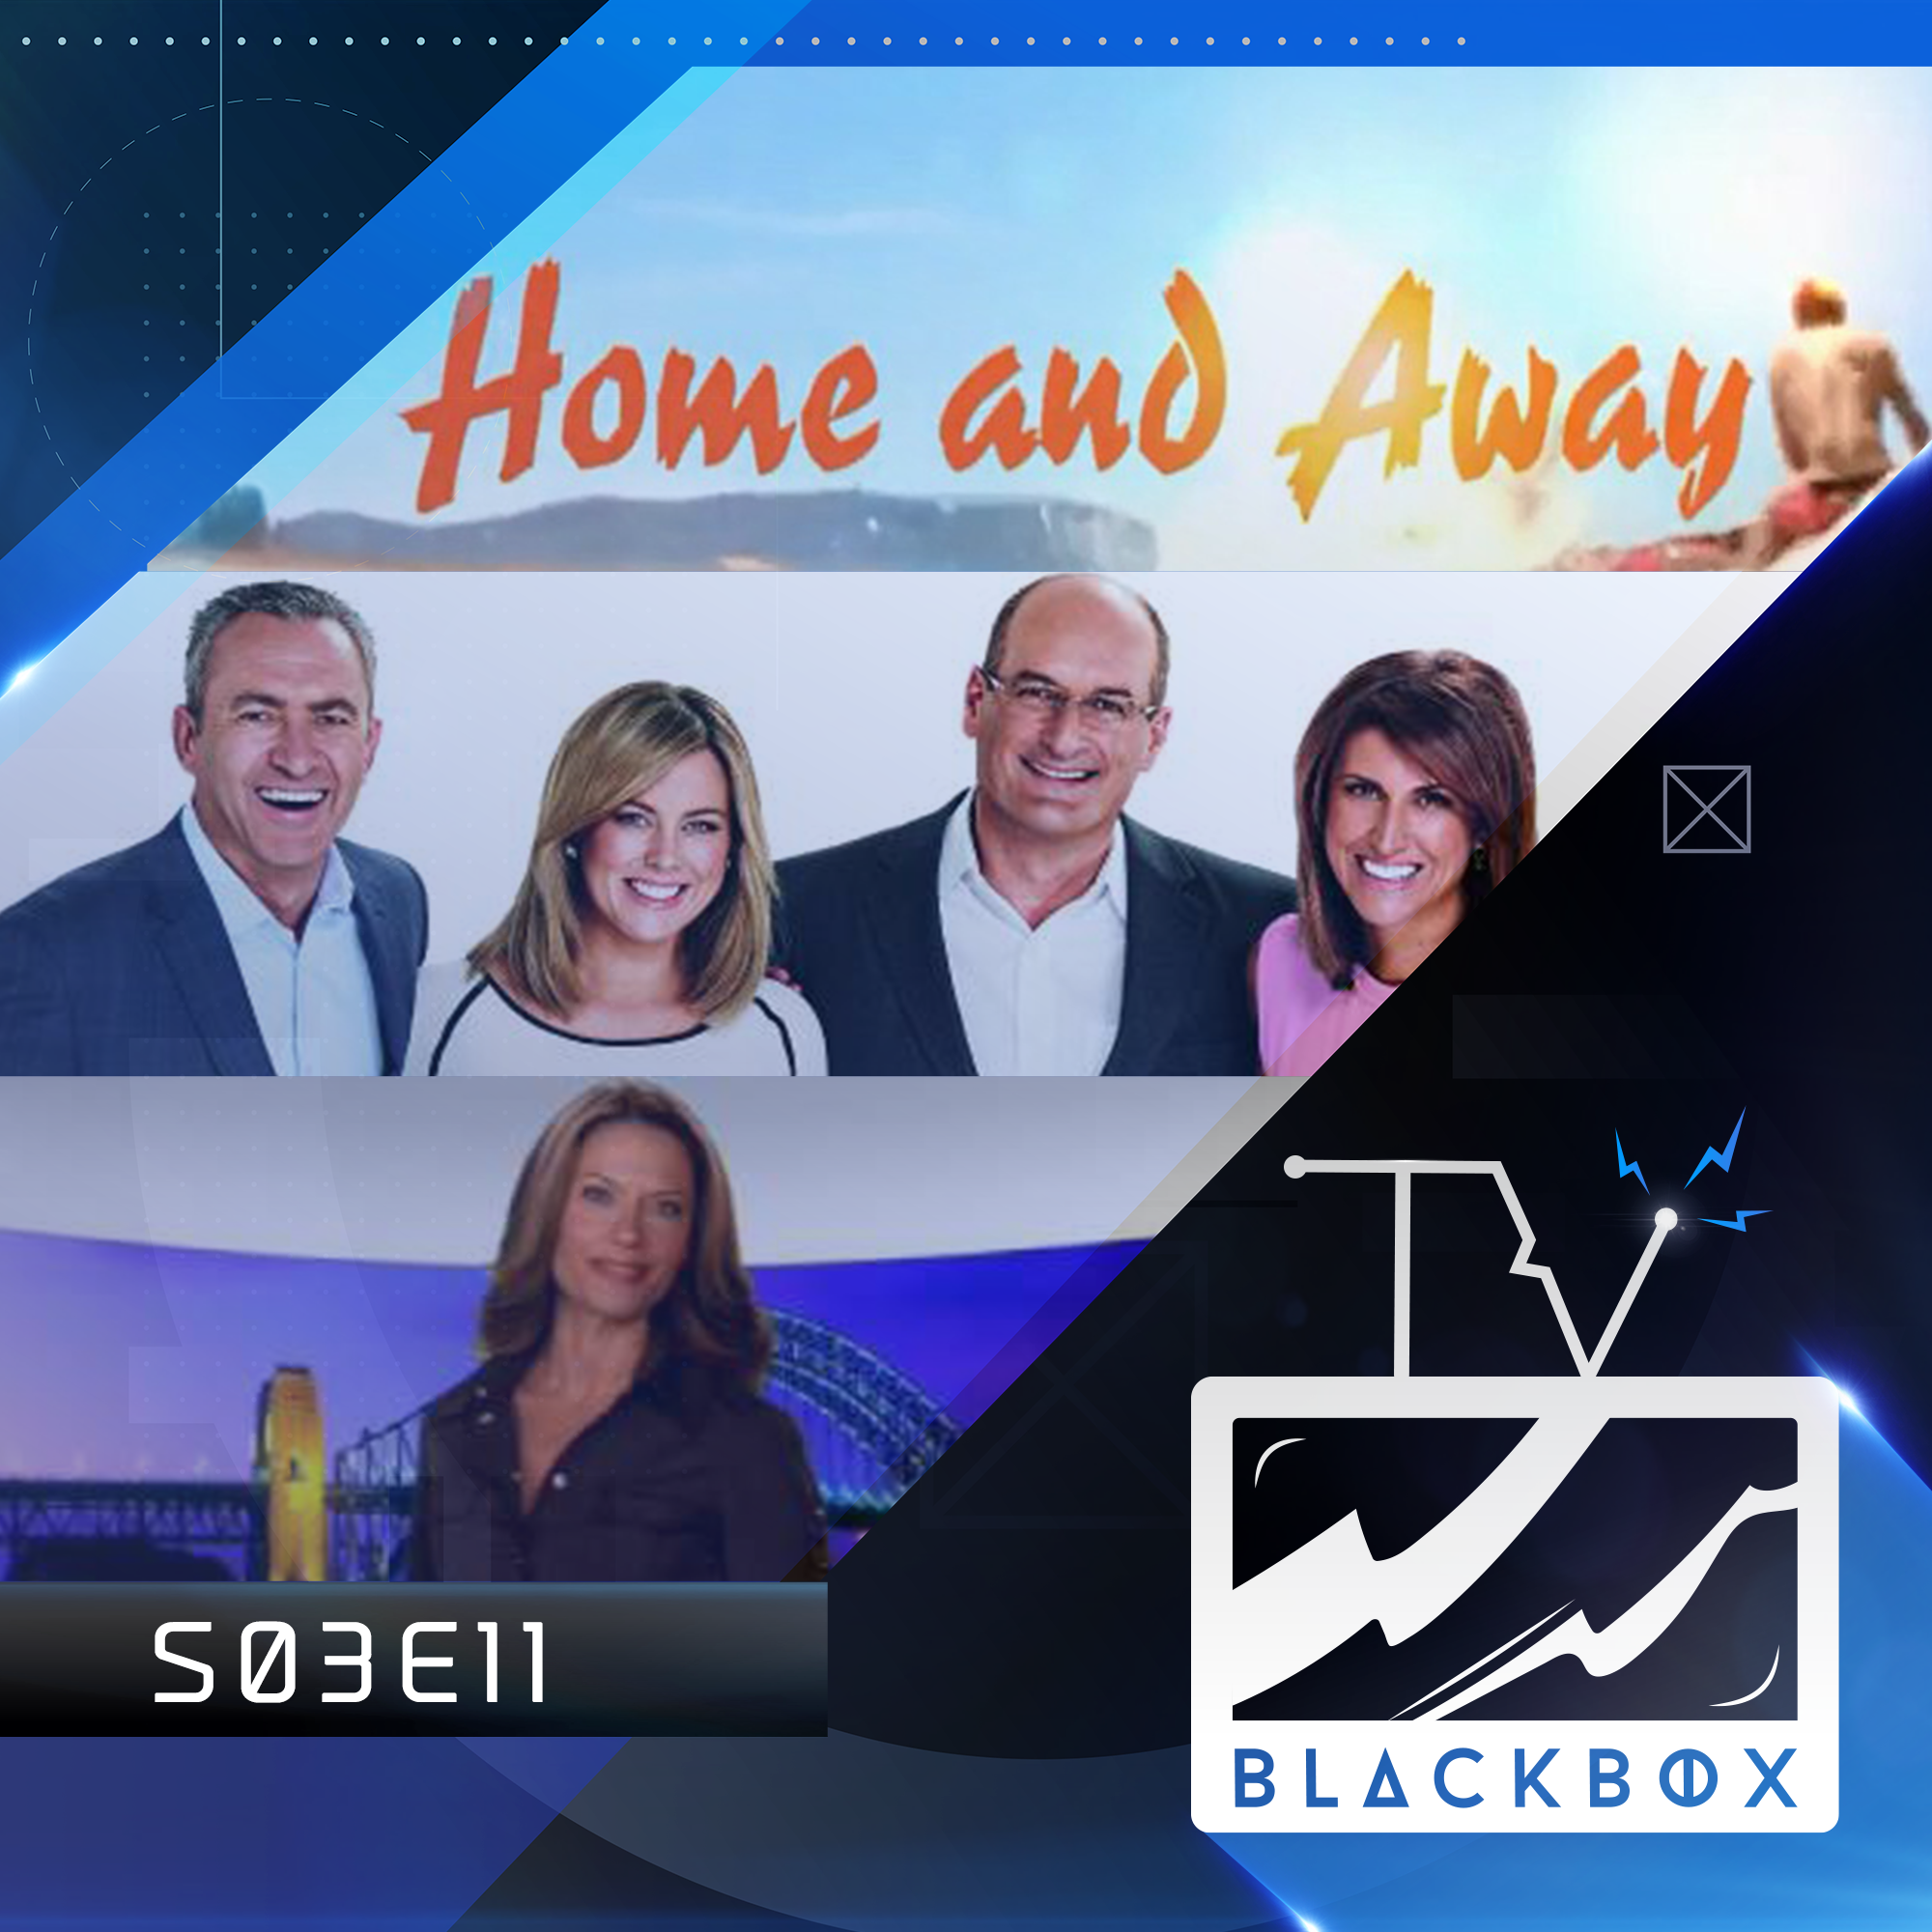 TV Blackbox S03E11